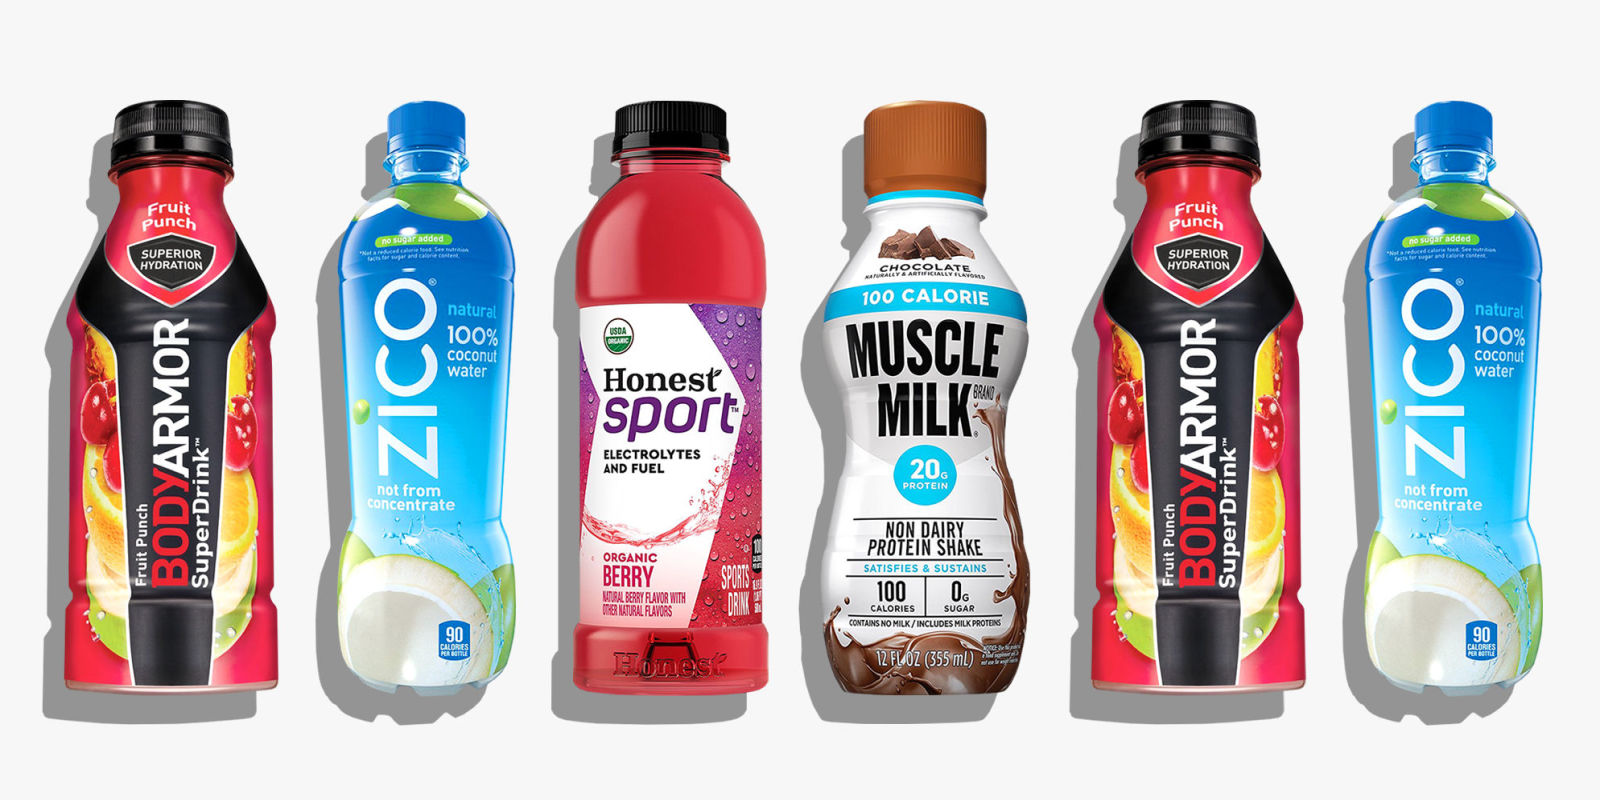 13 Best Sports Drinks of 2018 - Healthy Sports Drinks and ...